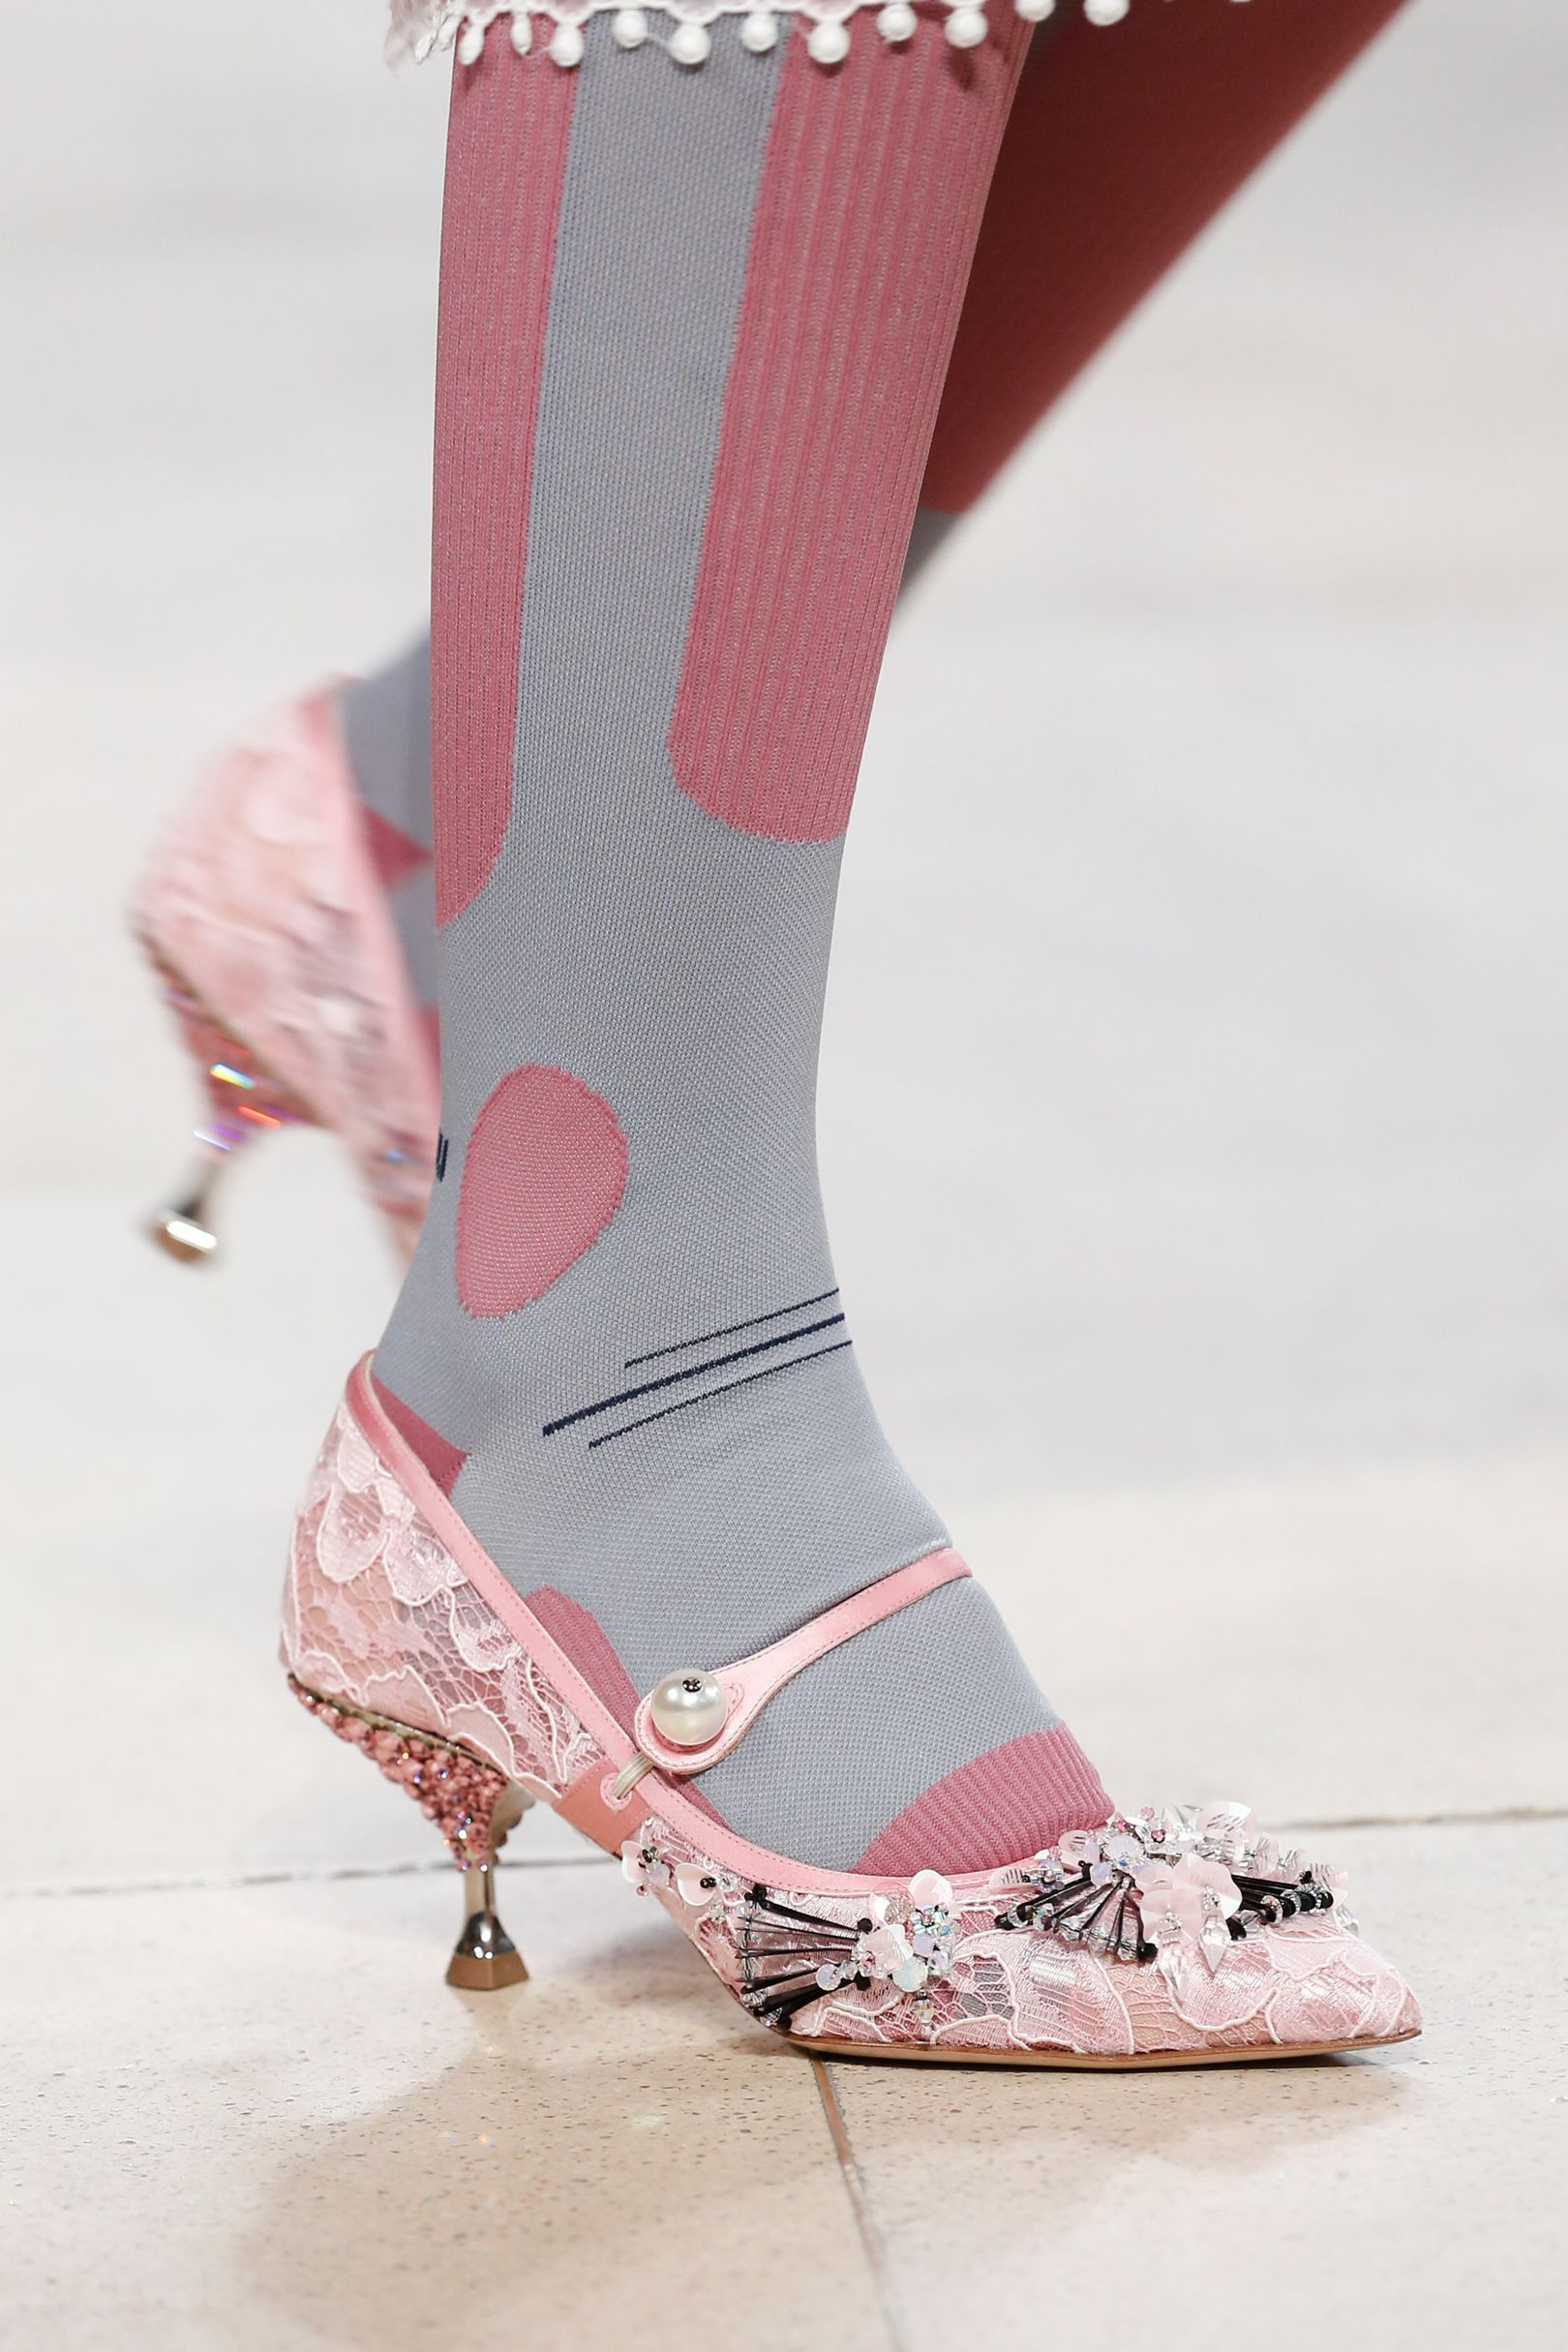 3ae3bf61cd6 ... Miu by Branded Womens Fashion Catwalk. Vogue s Ultimate Shoe Trend  Guide Spring Summer 2018